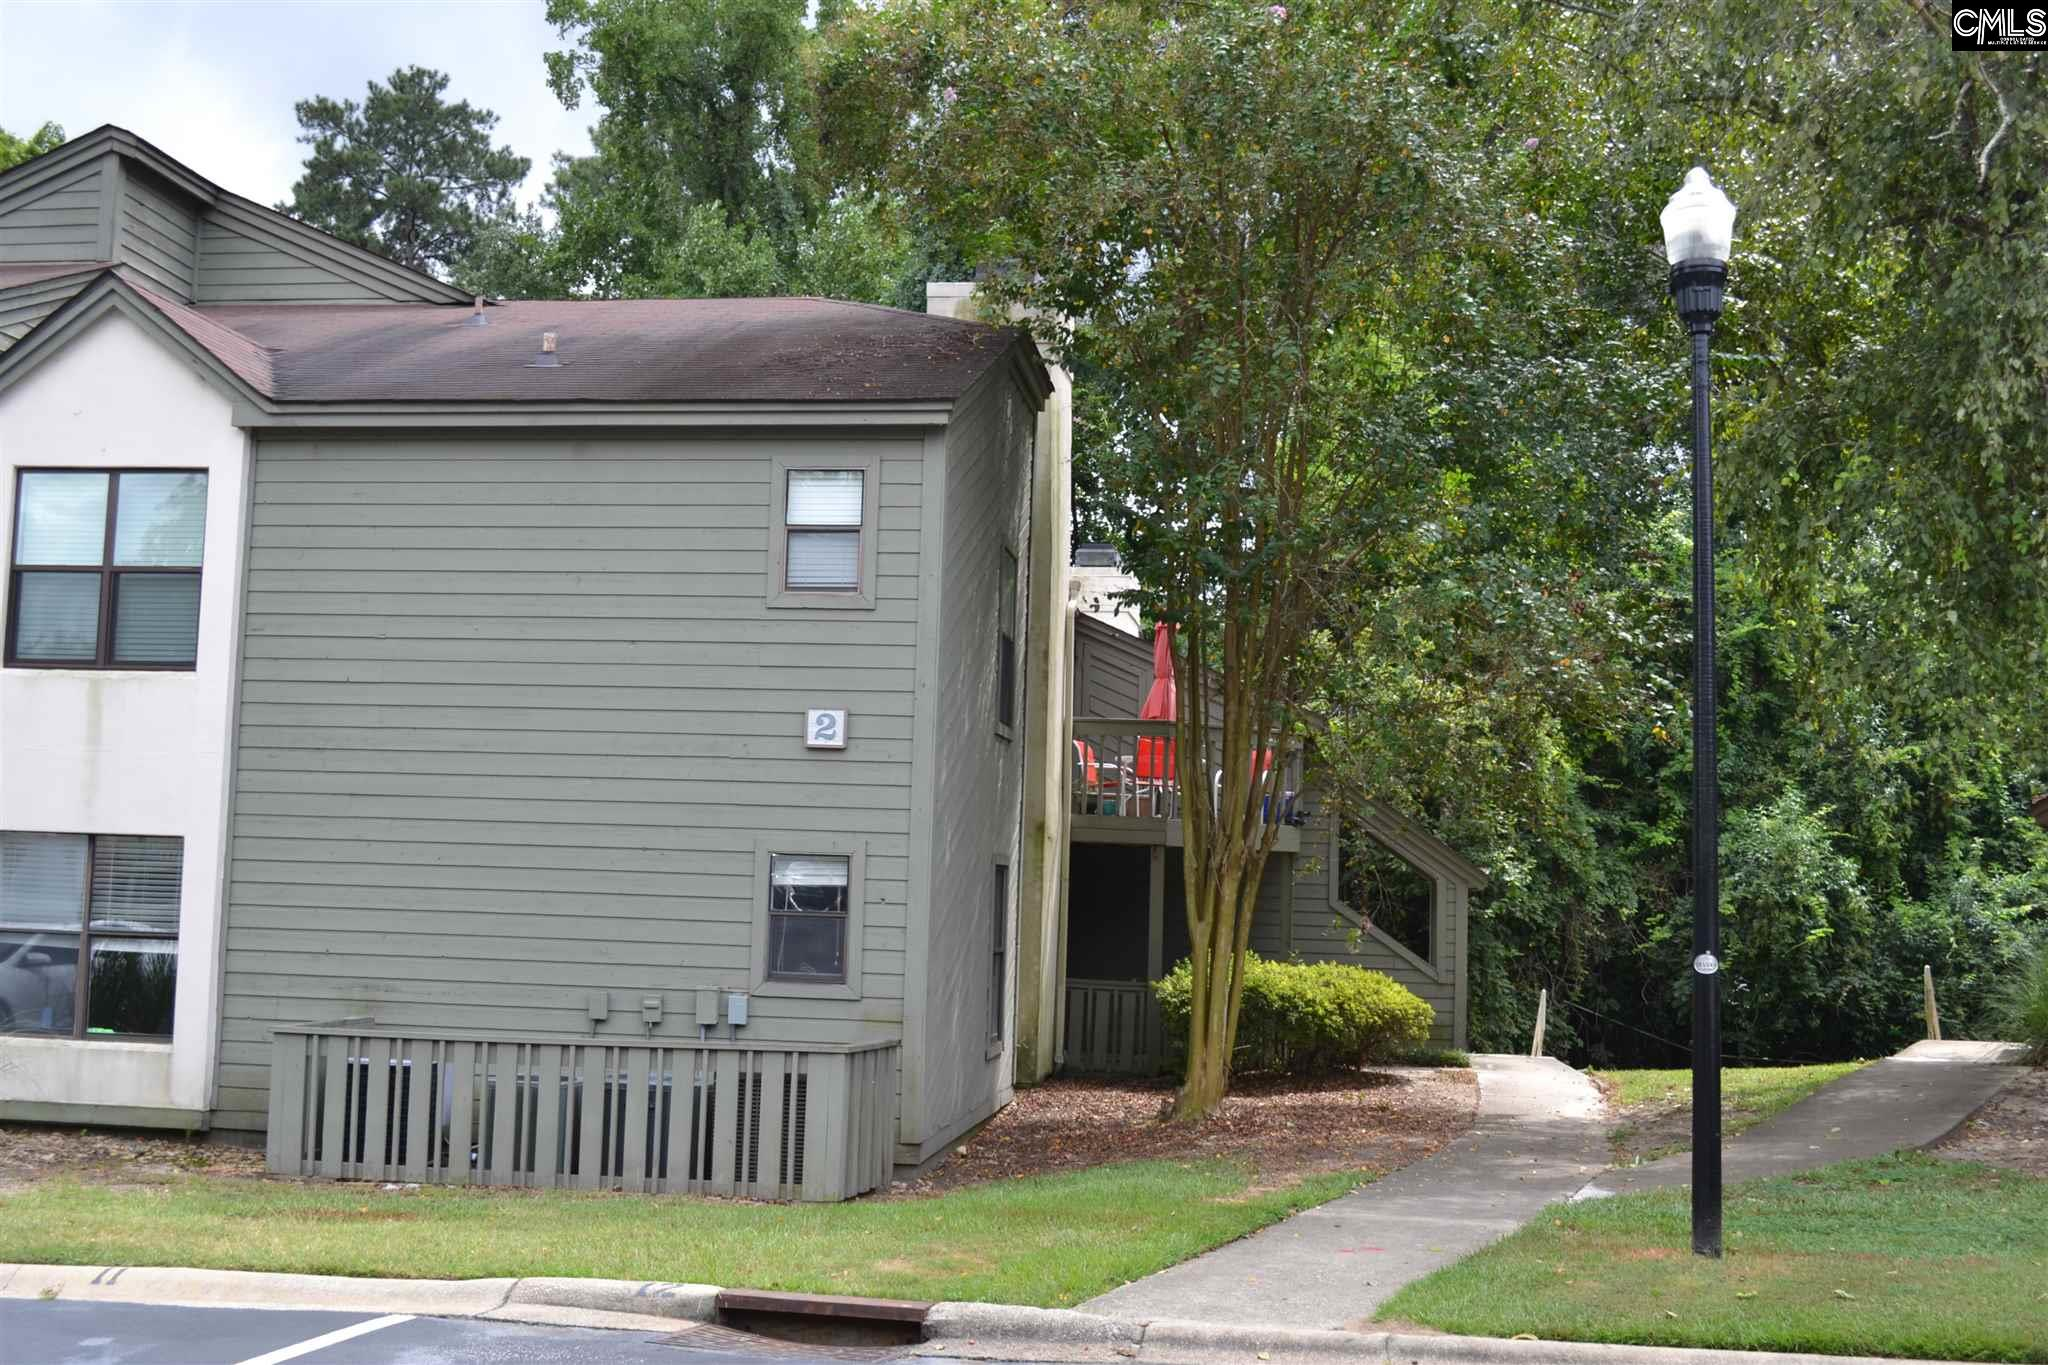 448 Deerwood Columbia, SC 29205-4171